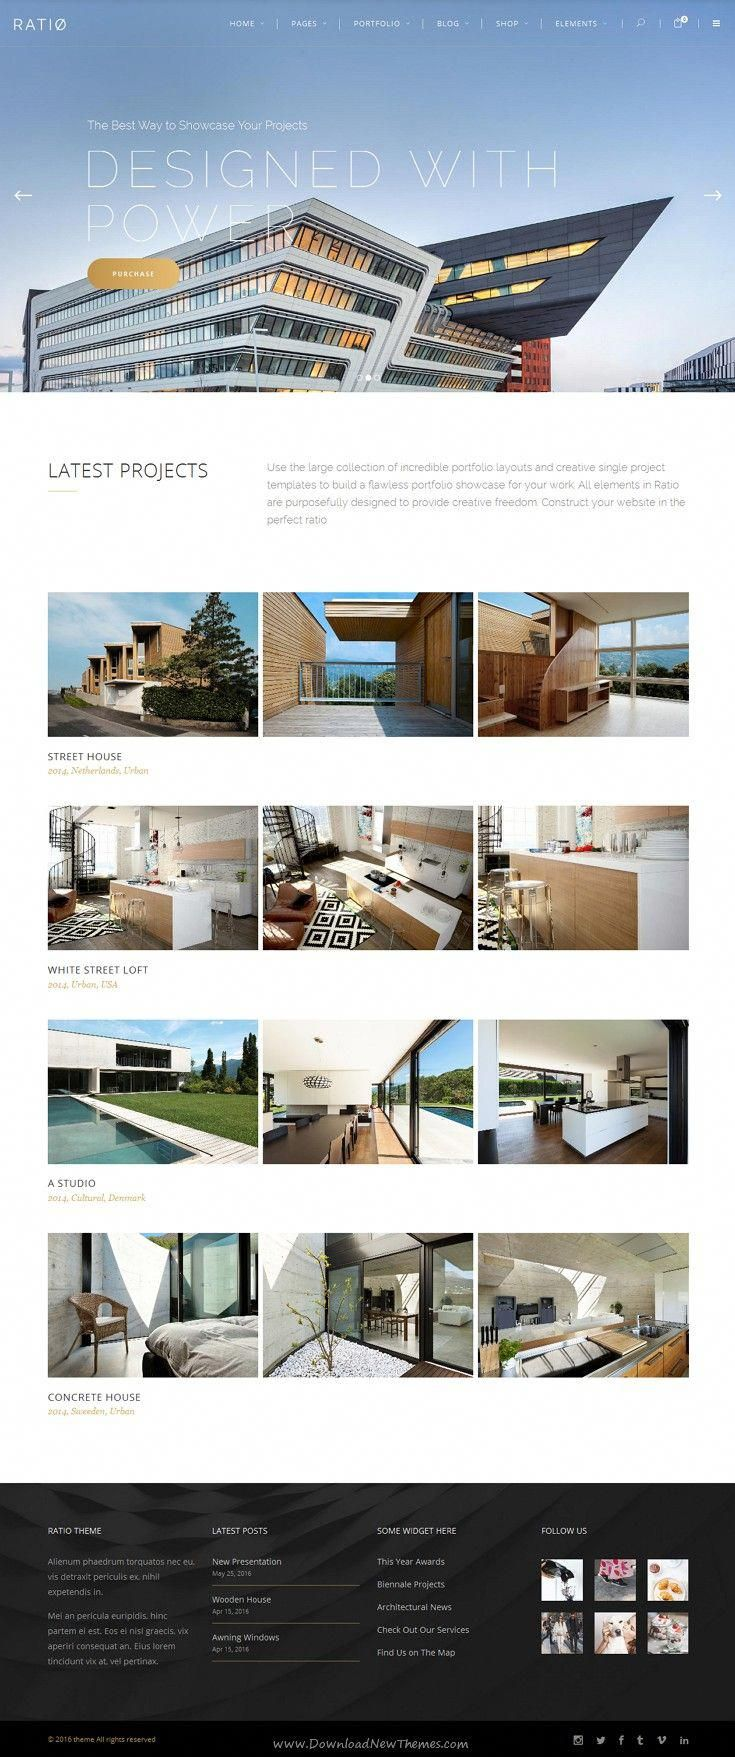 Ratio a powerful theme for architecture construction and interior design reviewinteriordesigner